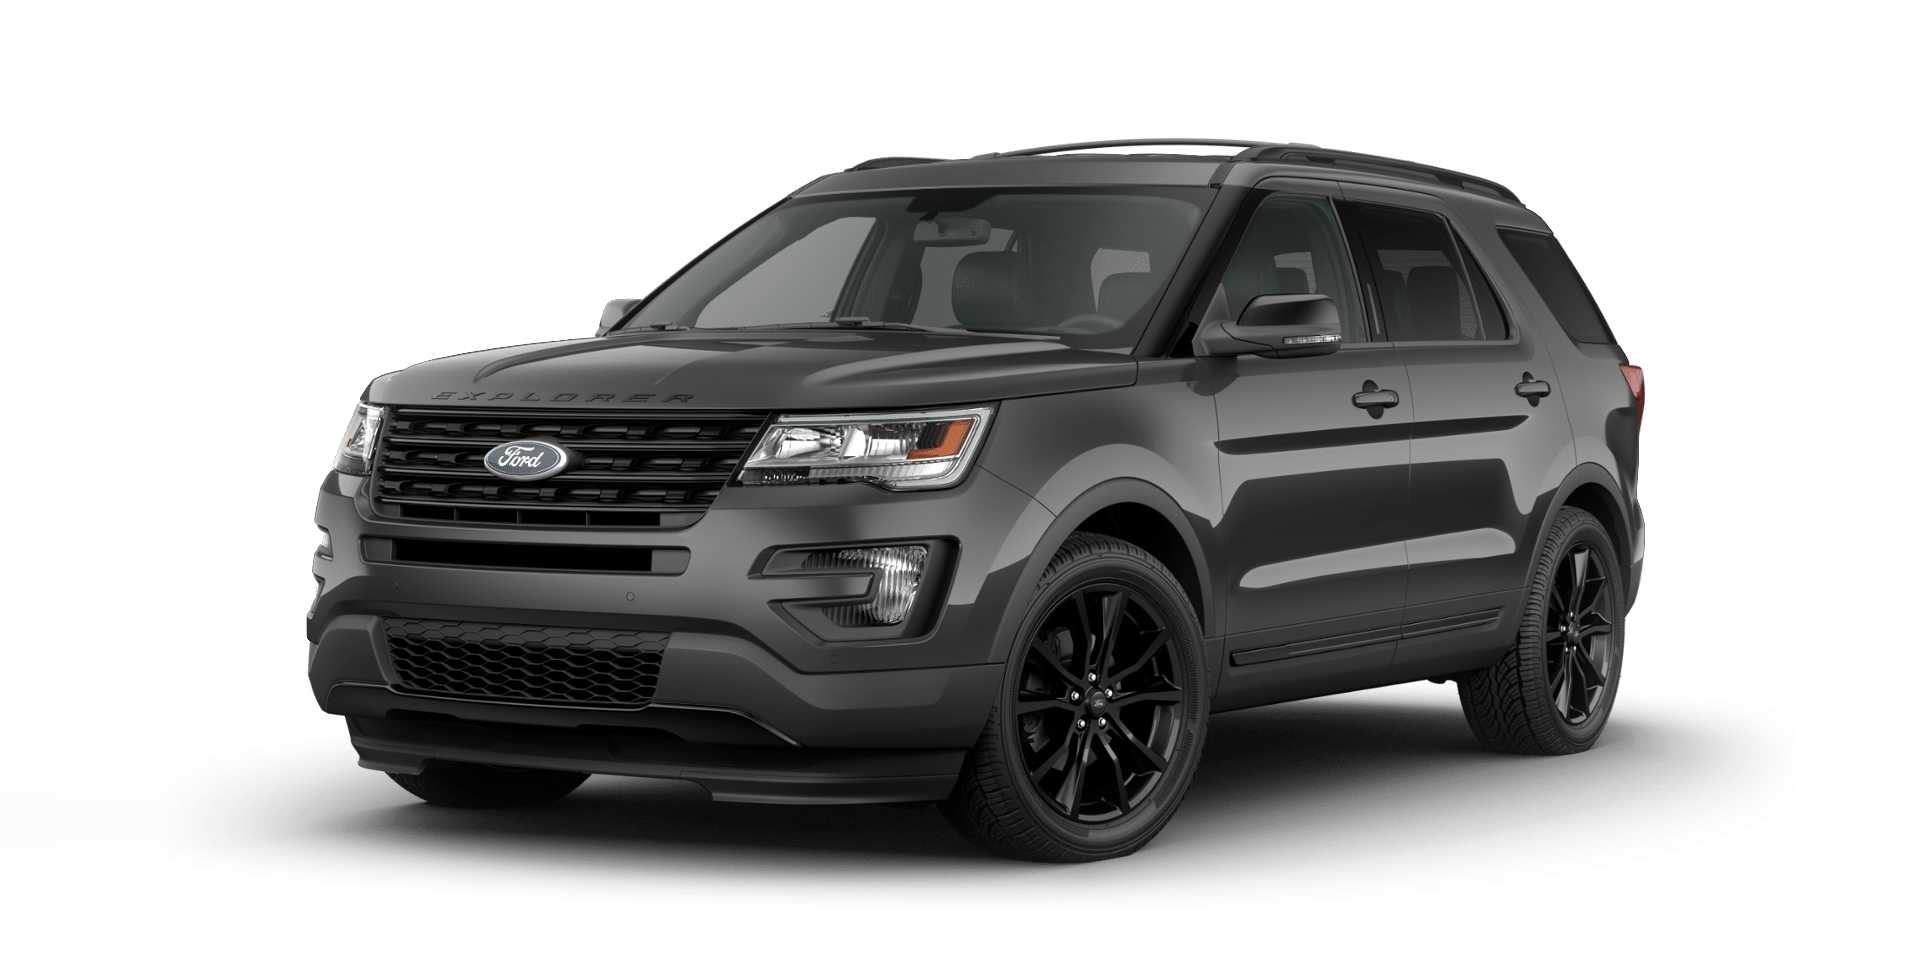 I Can T Wait Till My New Car Gets Here Ford Explorer Ford Explorer Sport Ford Suv